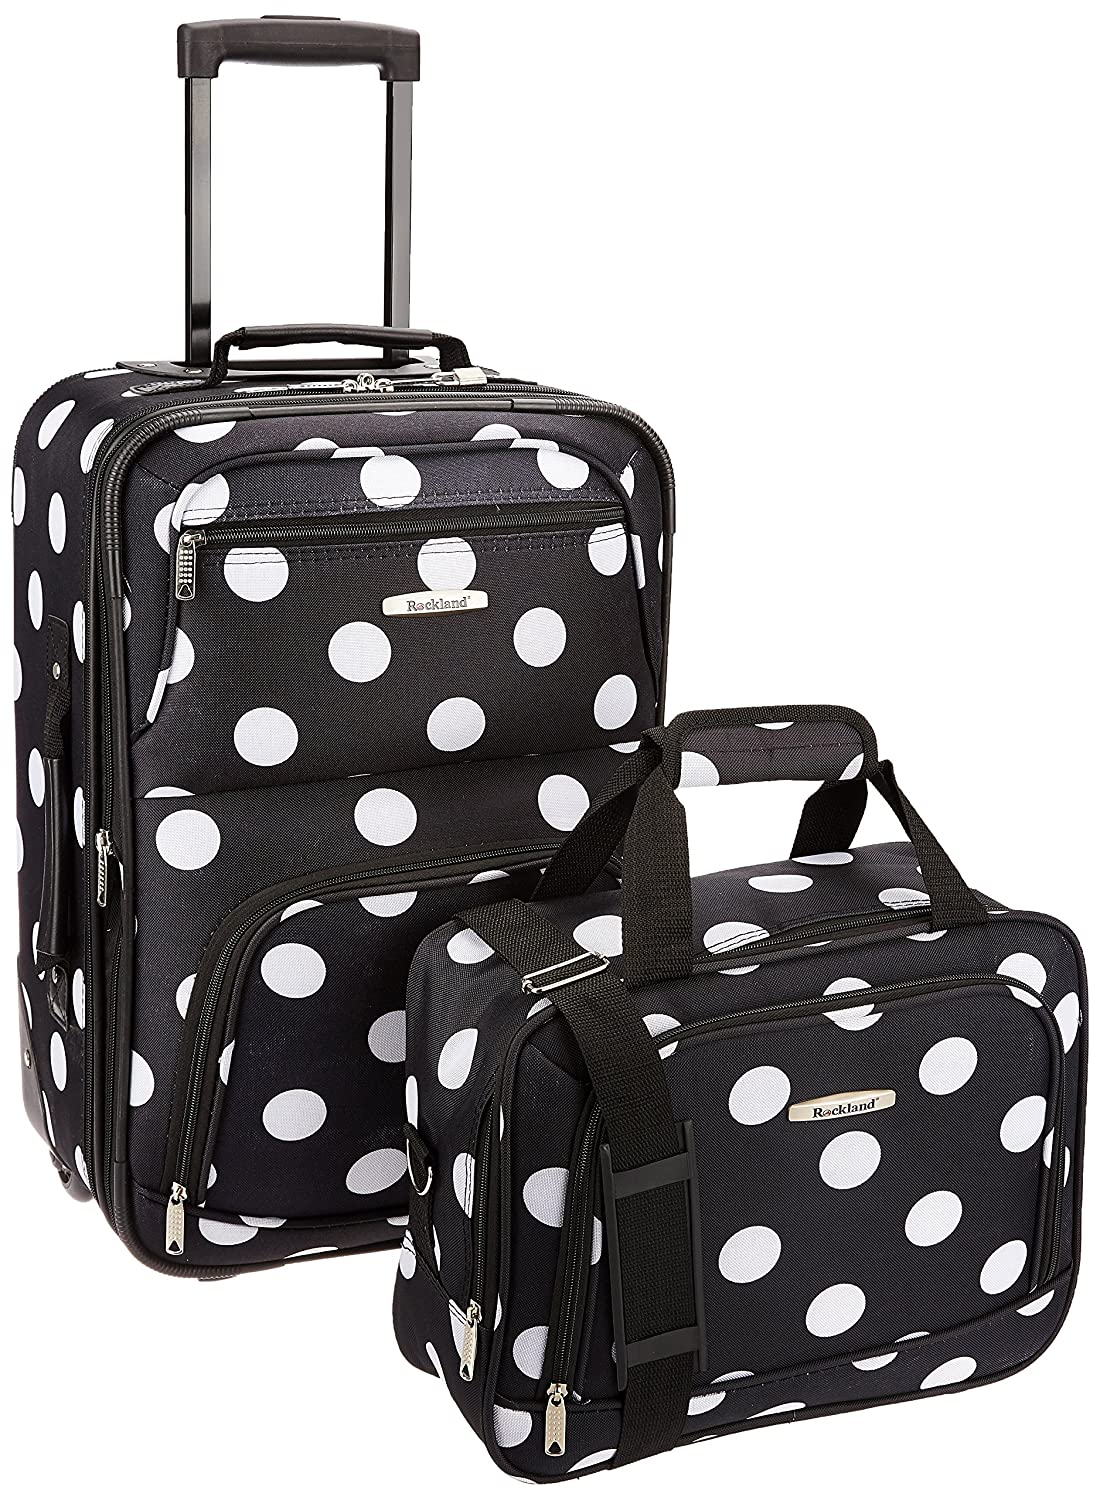 Rockland F102-BLACK DOT 2 Pc Blackdot Luggage Set 19 in. Upright & 12 in. Tote - Polyester B00503FUZW